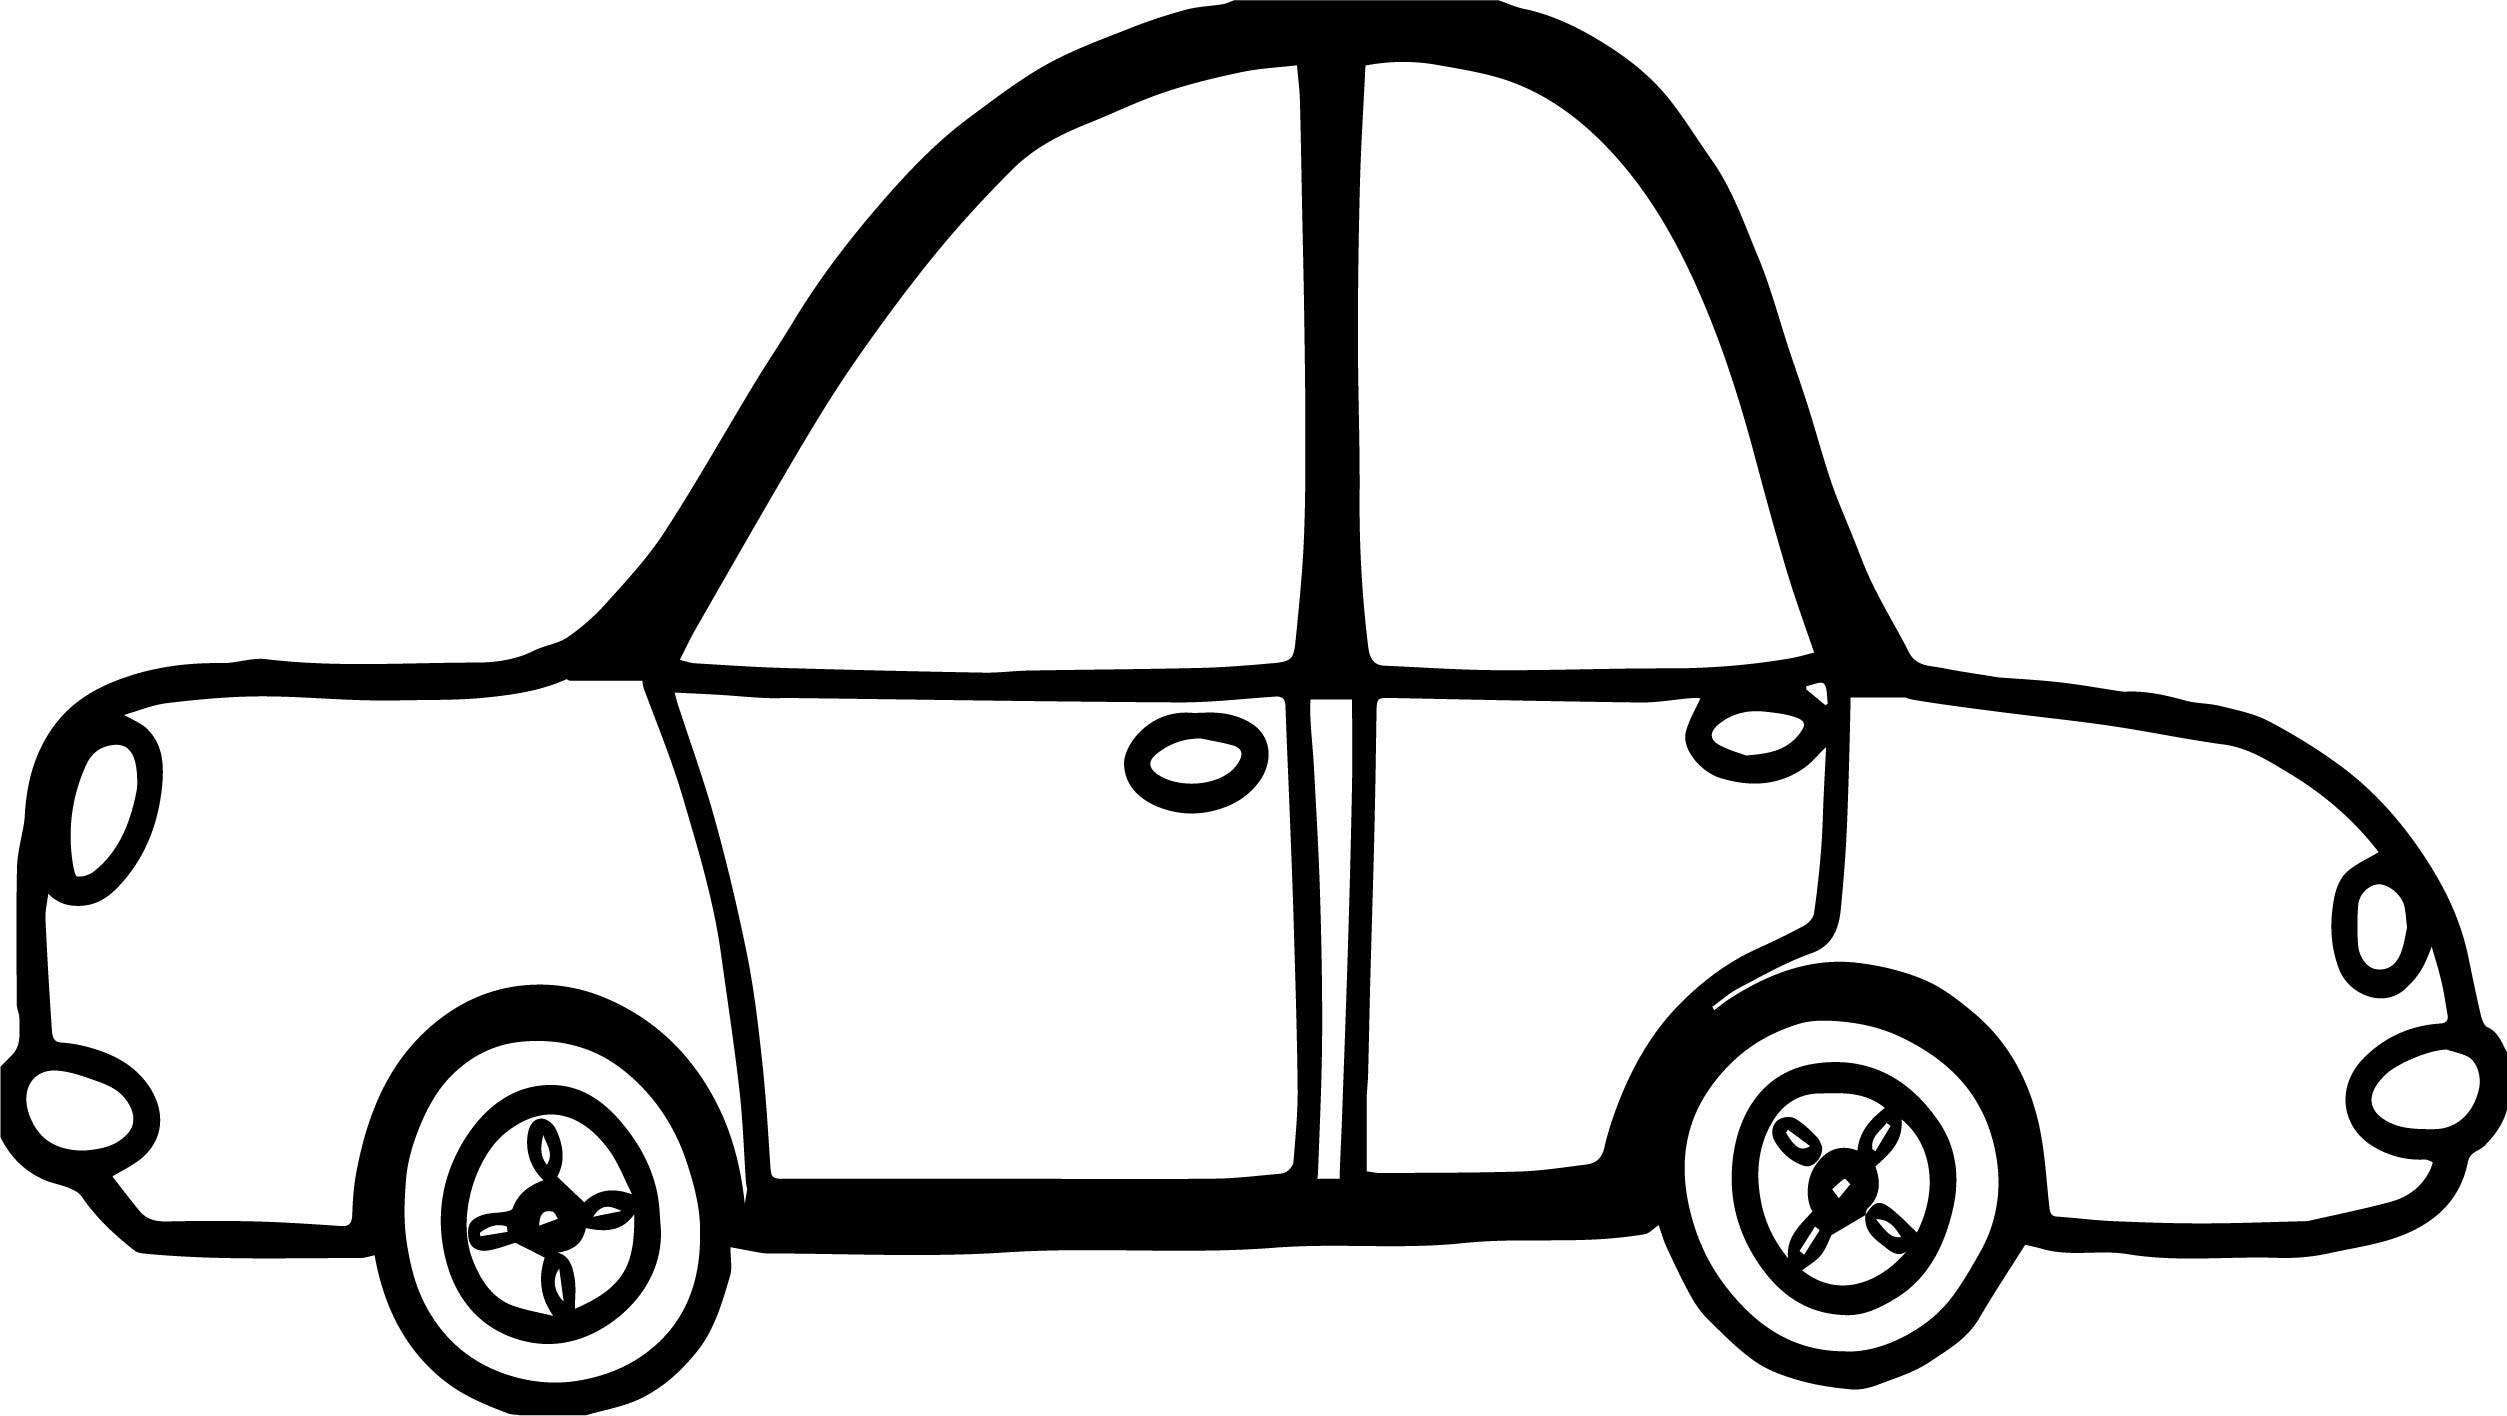 Toy Car Coloring Page | Wecoloringpage.com